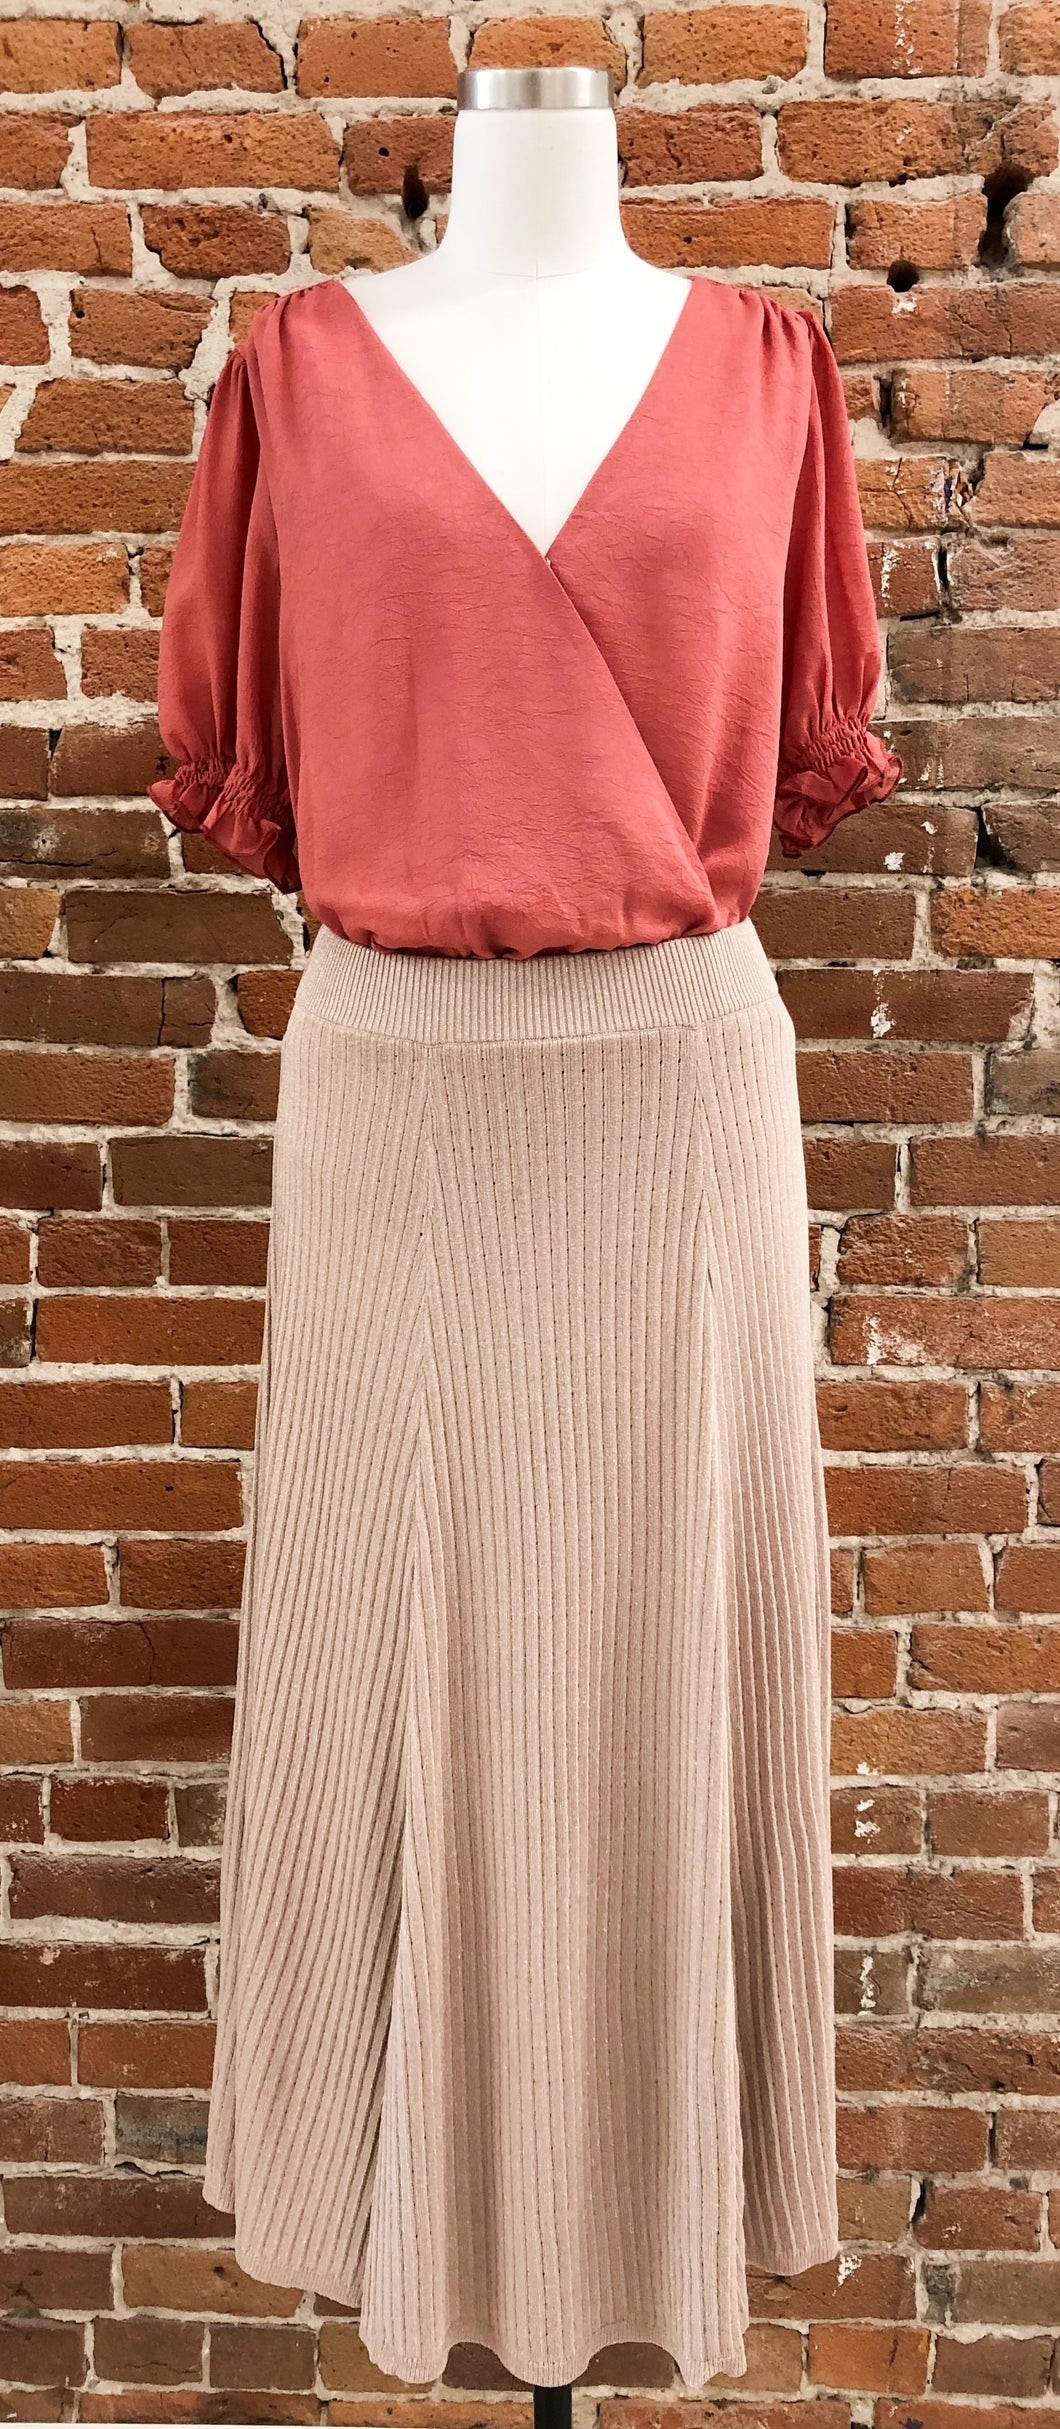 Milo Midi Length Sweater Skirt in Metallic Dusty Rose - FINAL SALE